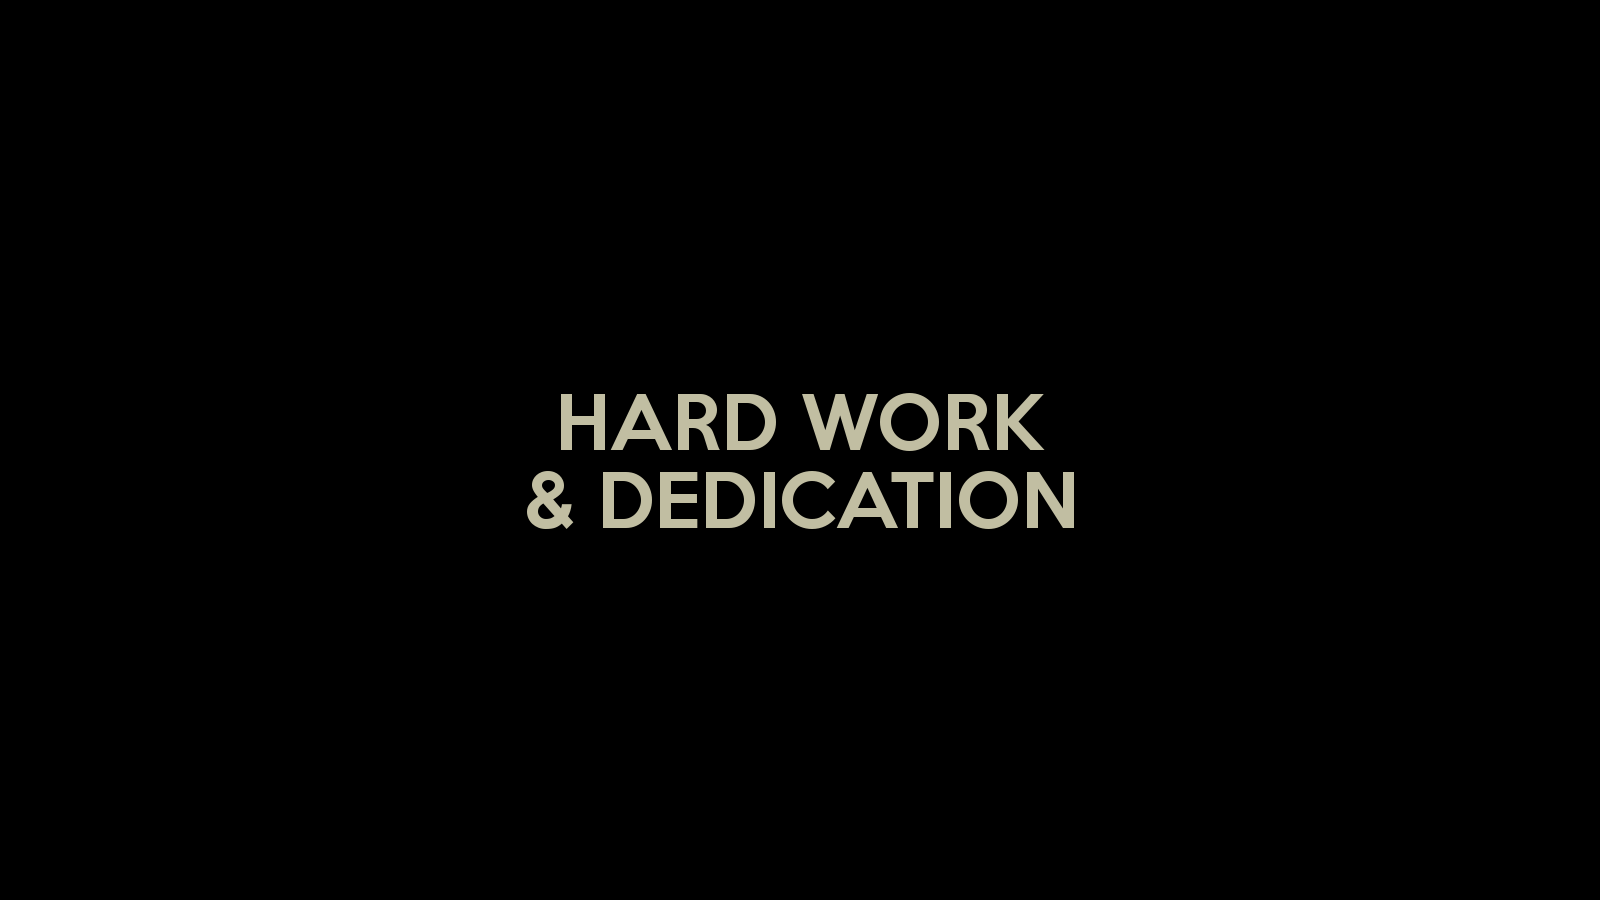 Quotes about hard work and dedication 46 quotes co thecheapjerseys Gallery